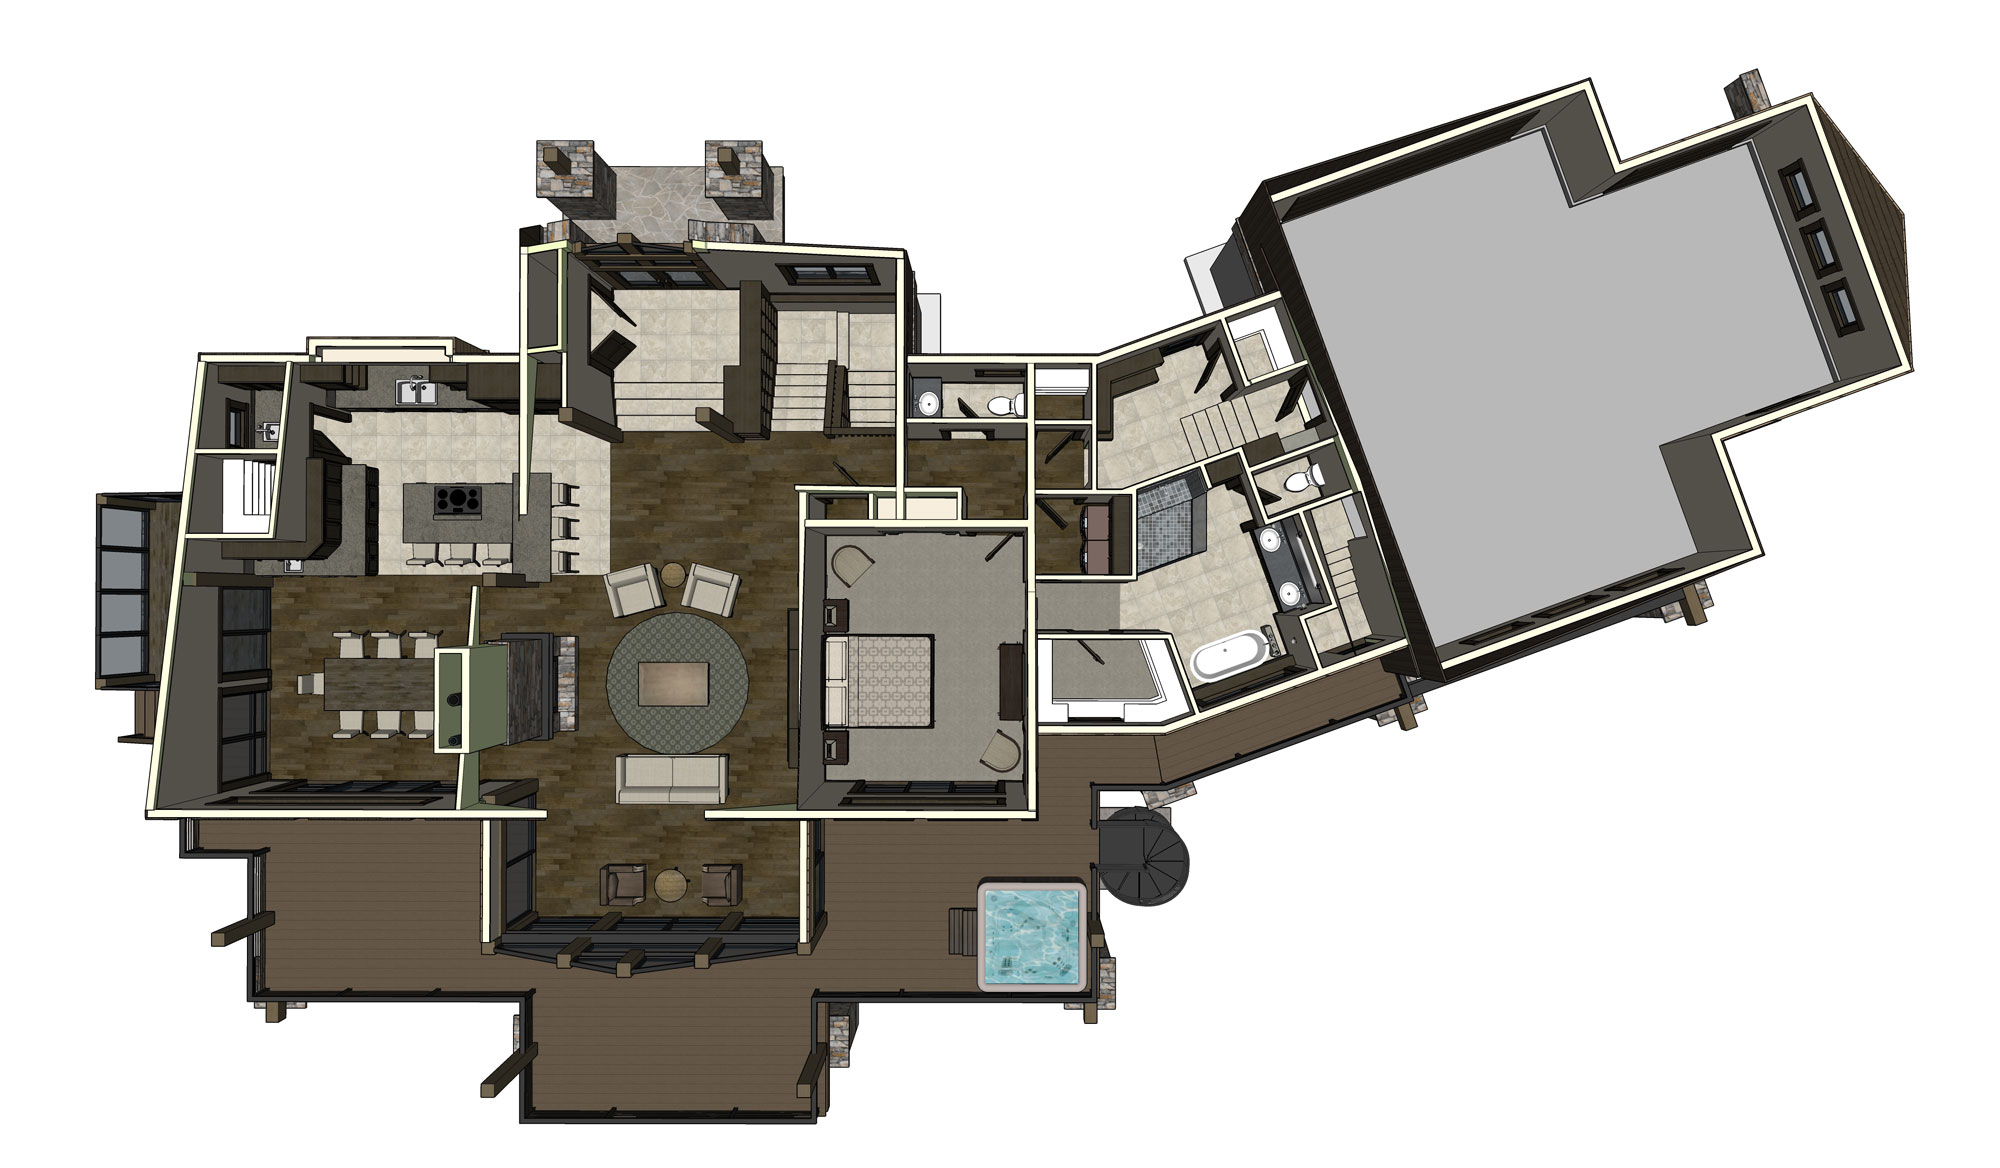 555 whitewater drive tamarack resort virtual design concepts lower level